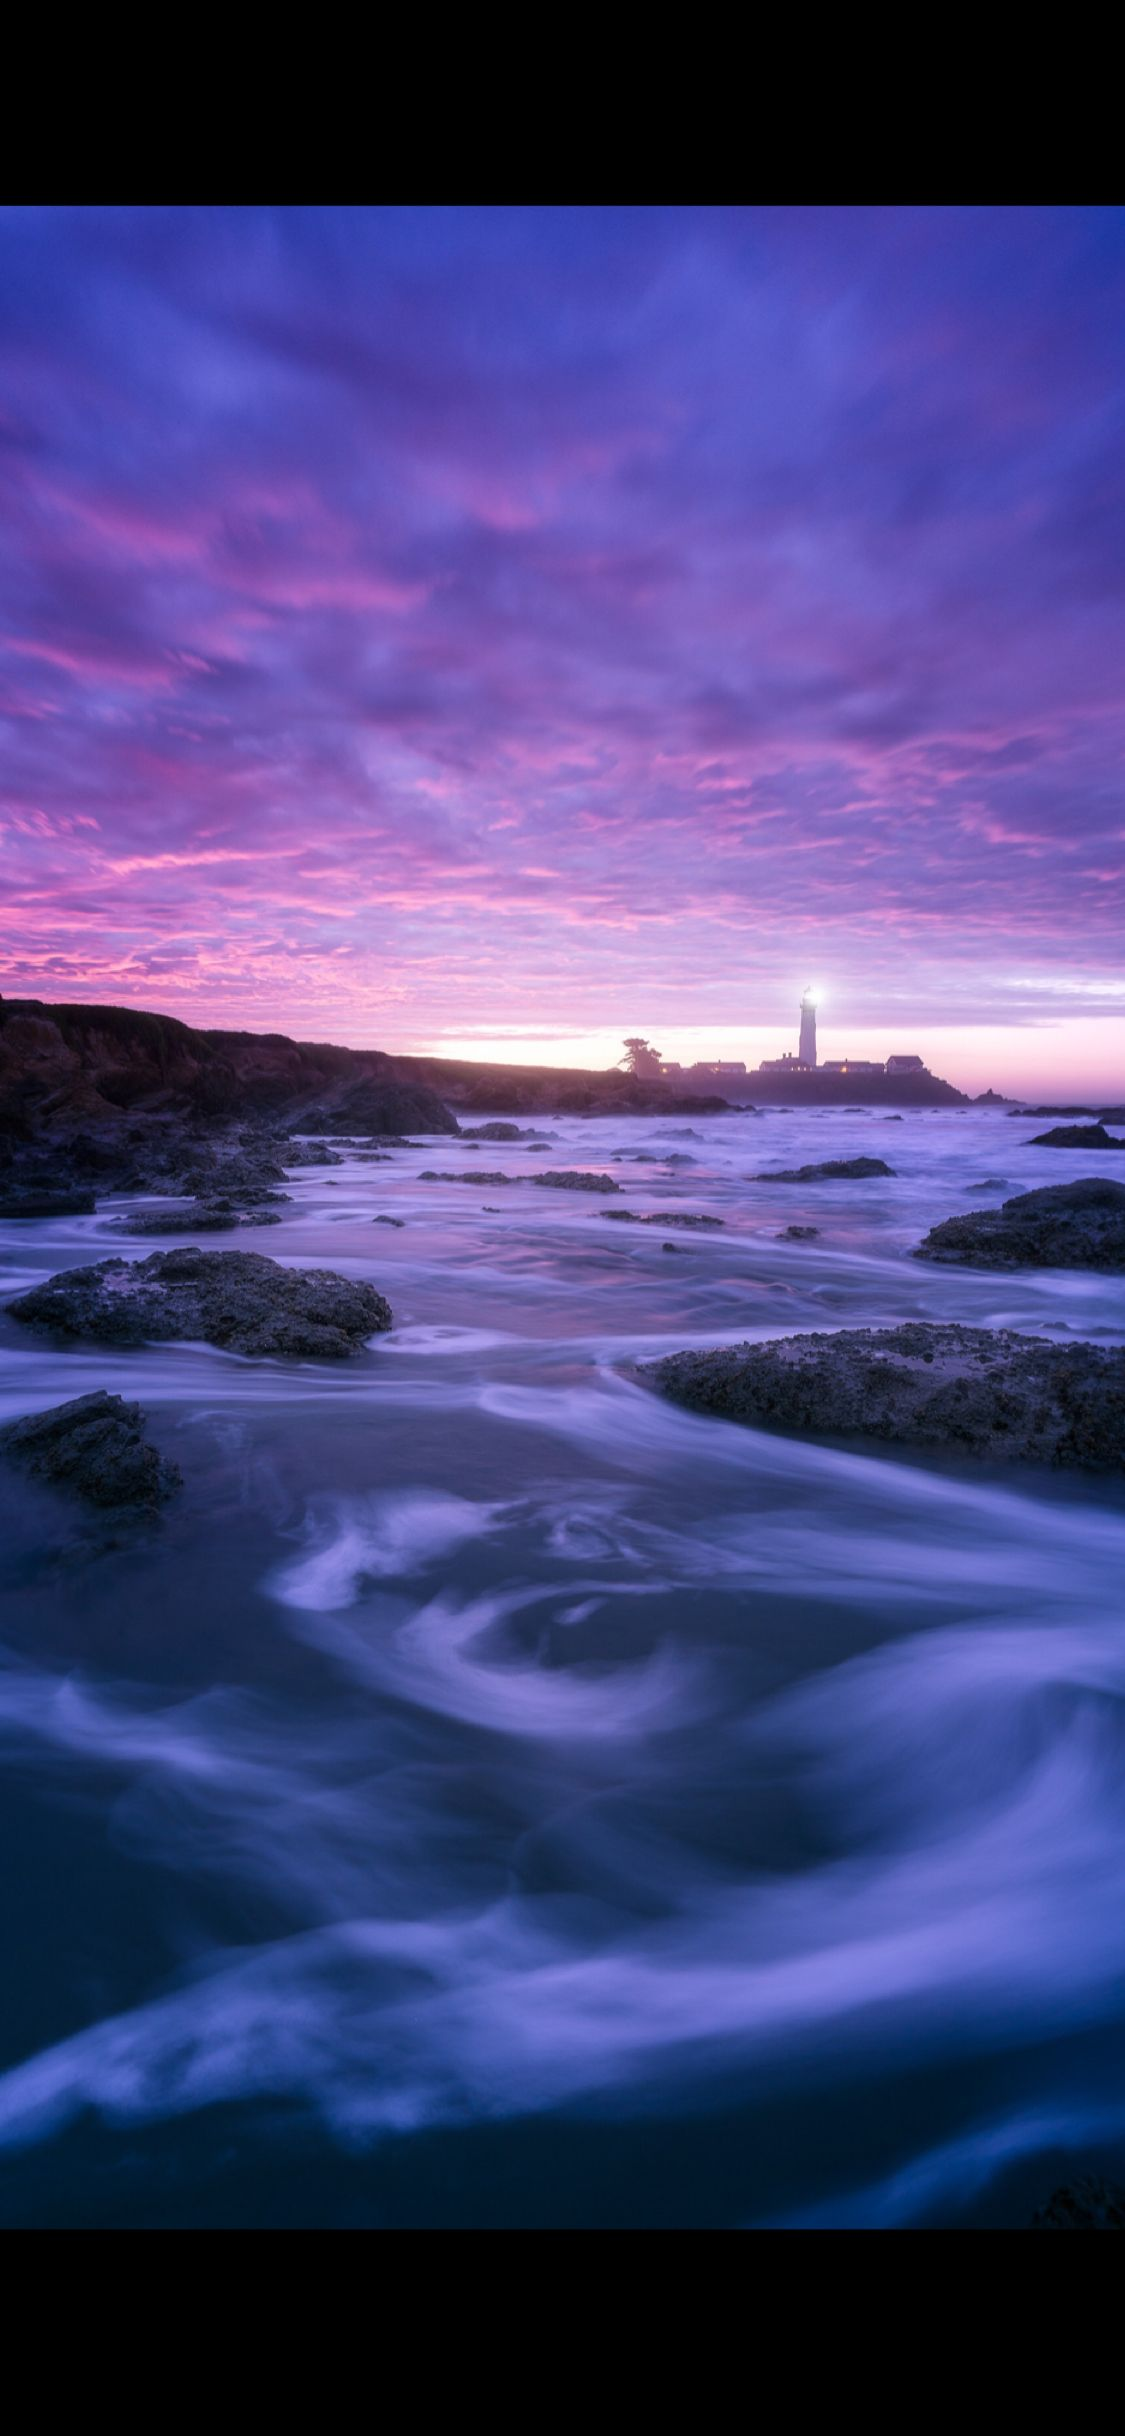 The lighthouse in the purple Ios wallpapers, Iphone